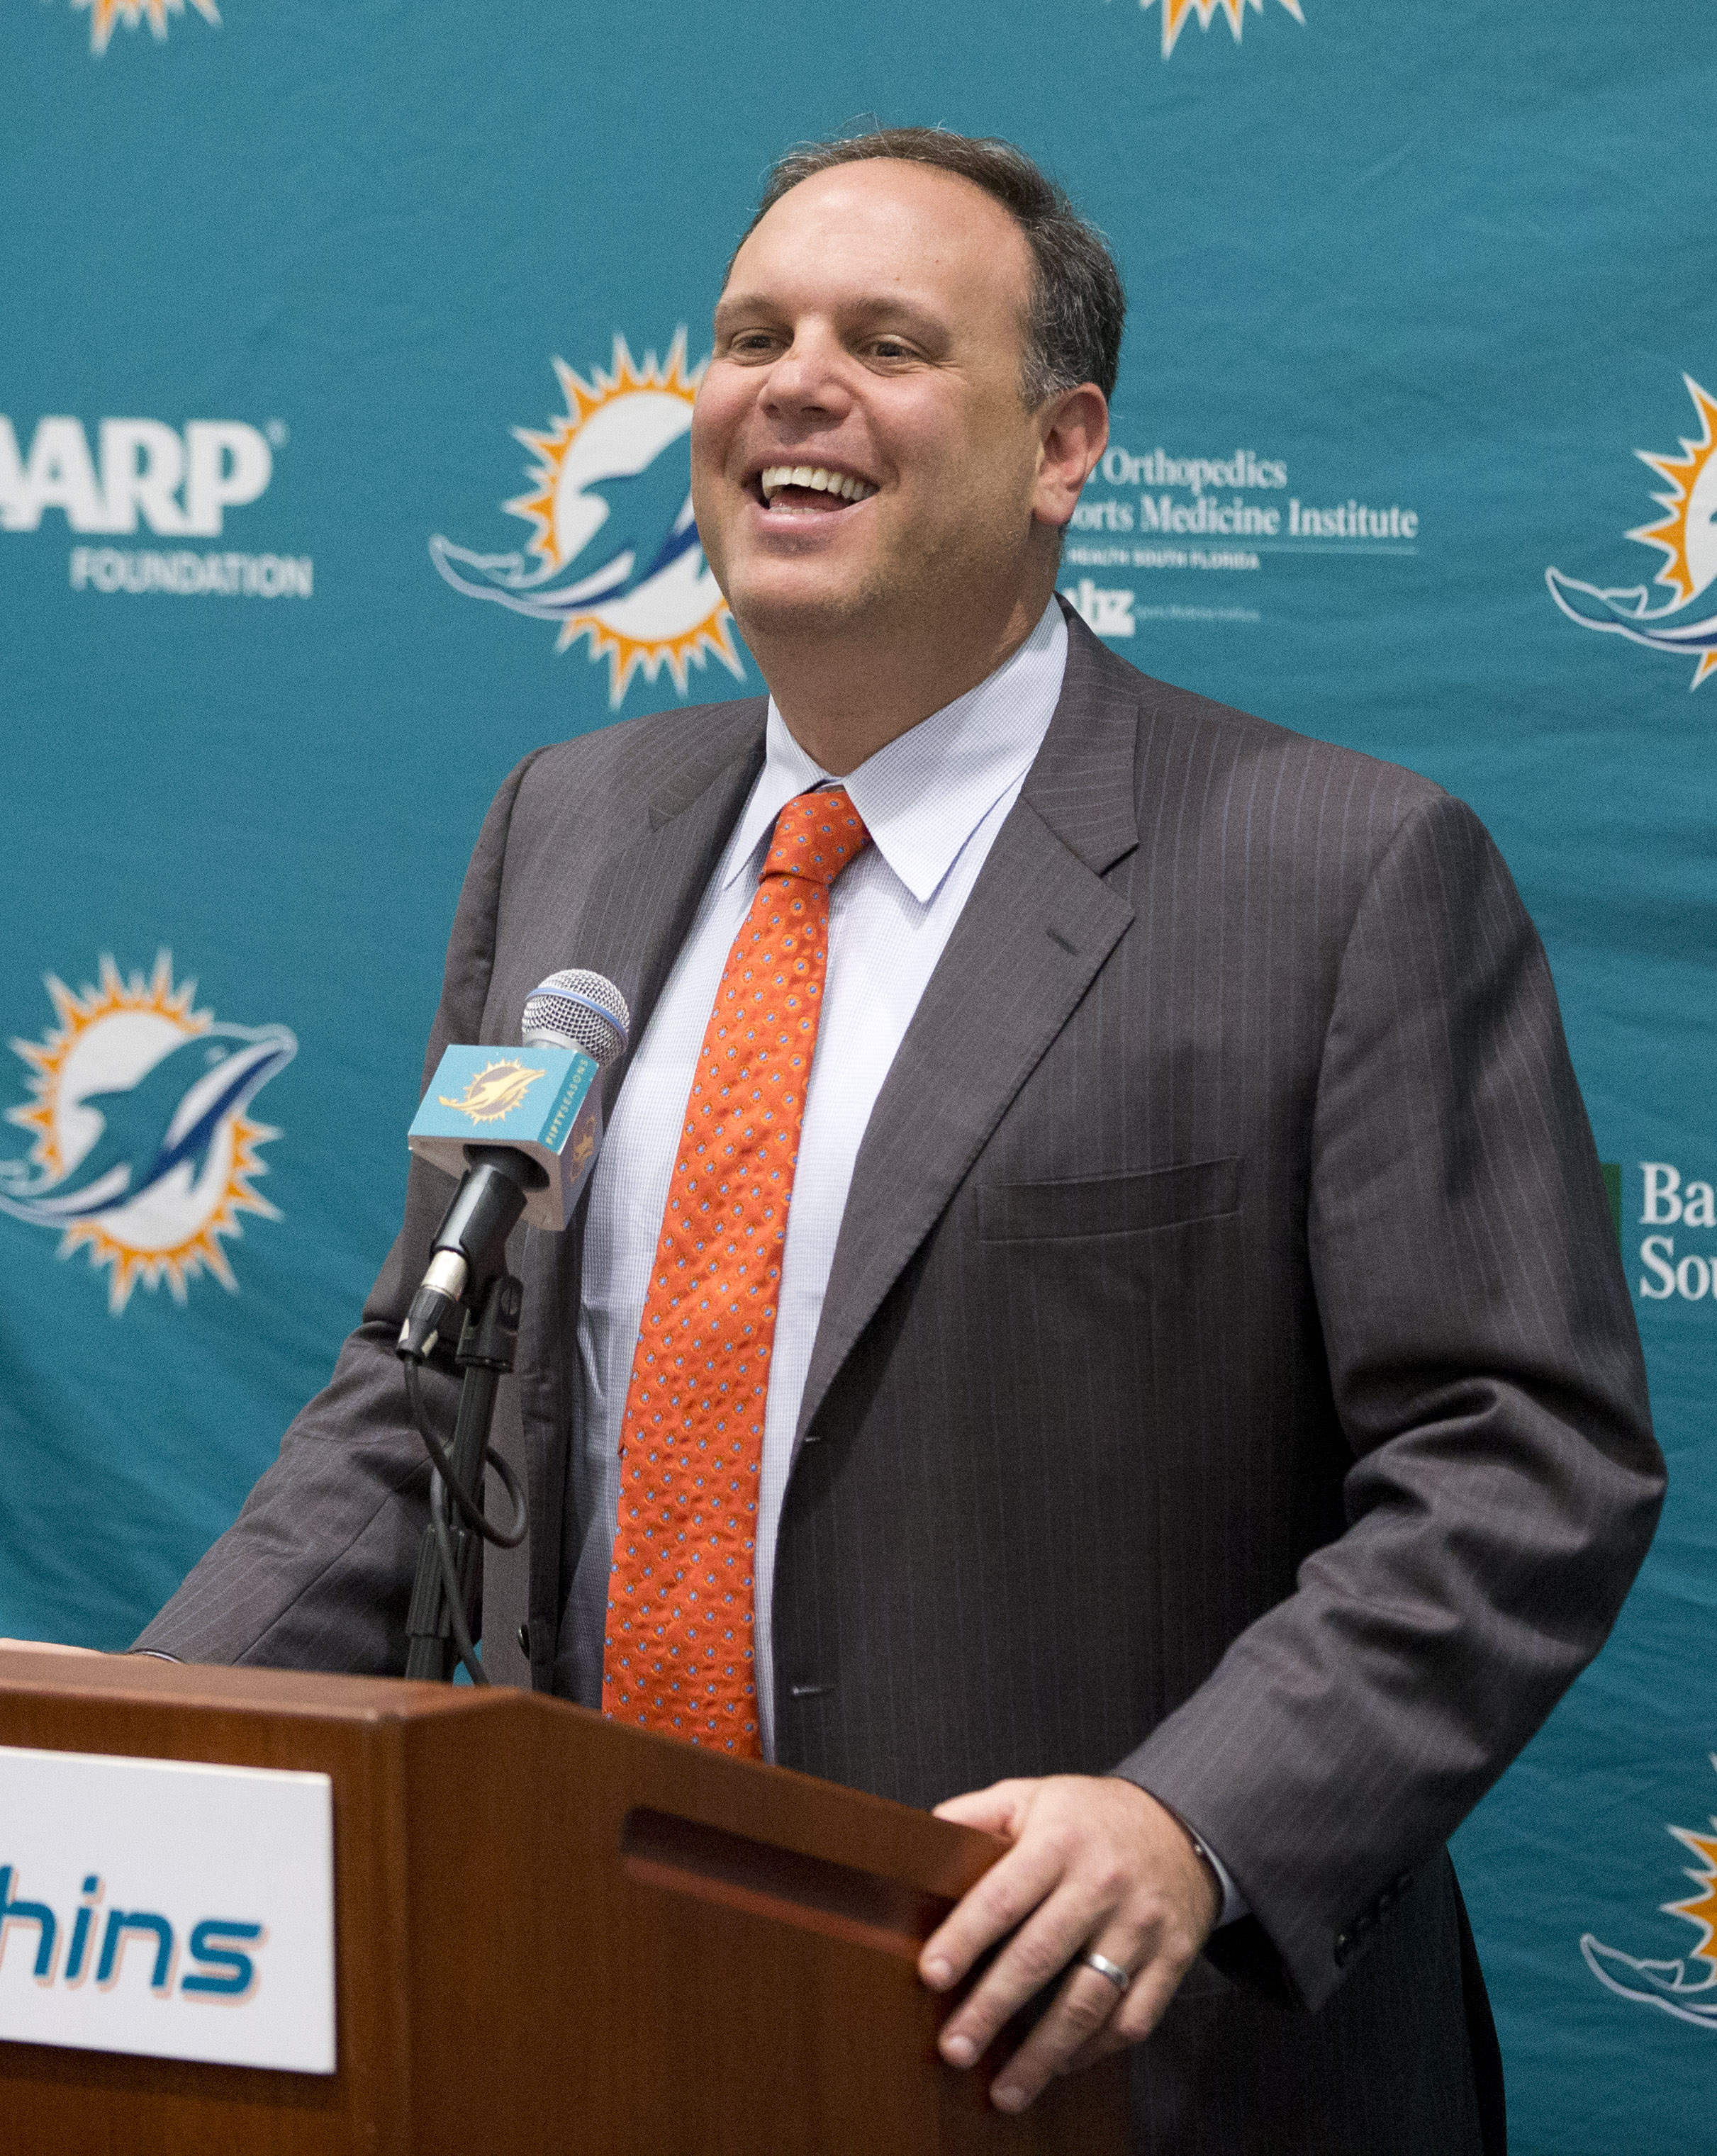 Miami Dolphins executive vice president of football operations, Mike Tannenbaum, laughs as he speaks to members of the media, Monday, Jan. 4, 2016 at the Dolphins training facility in Davie, Fla. Tannenbaum announced the hiring of former Dolphins director